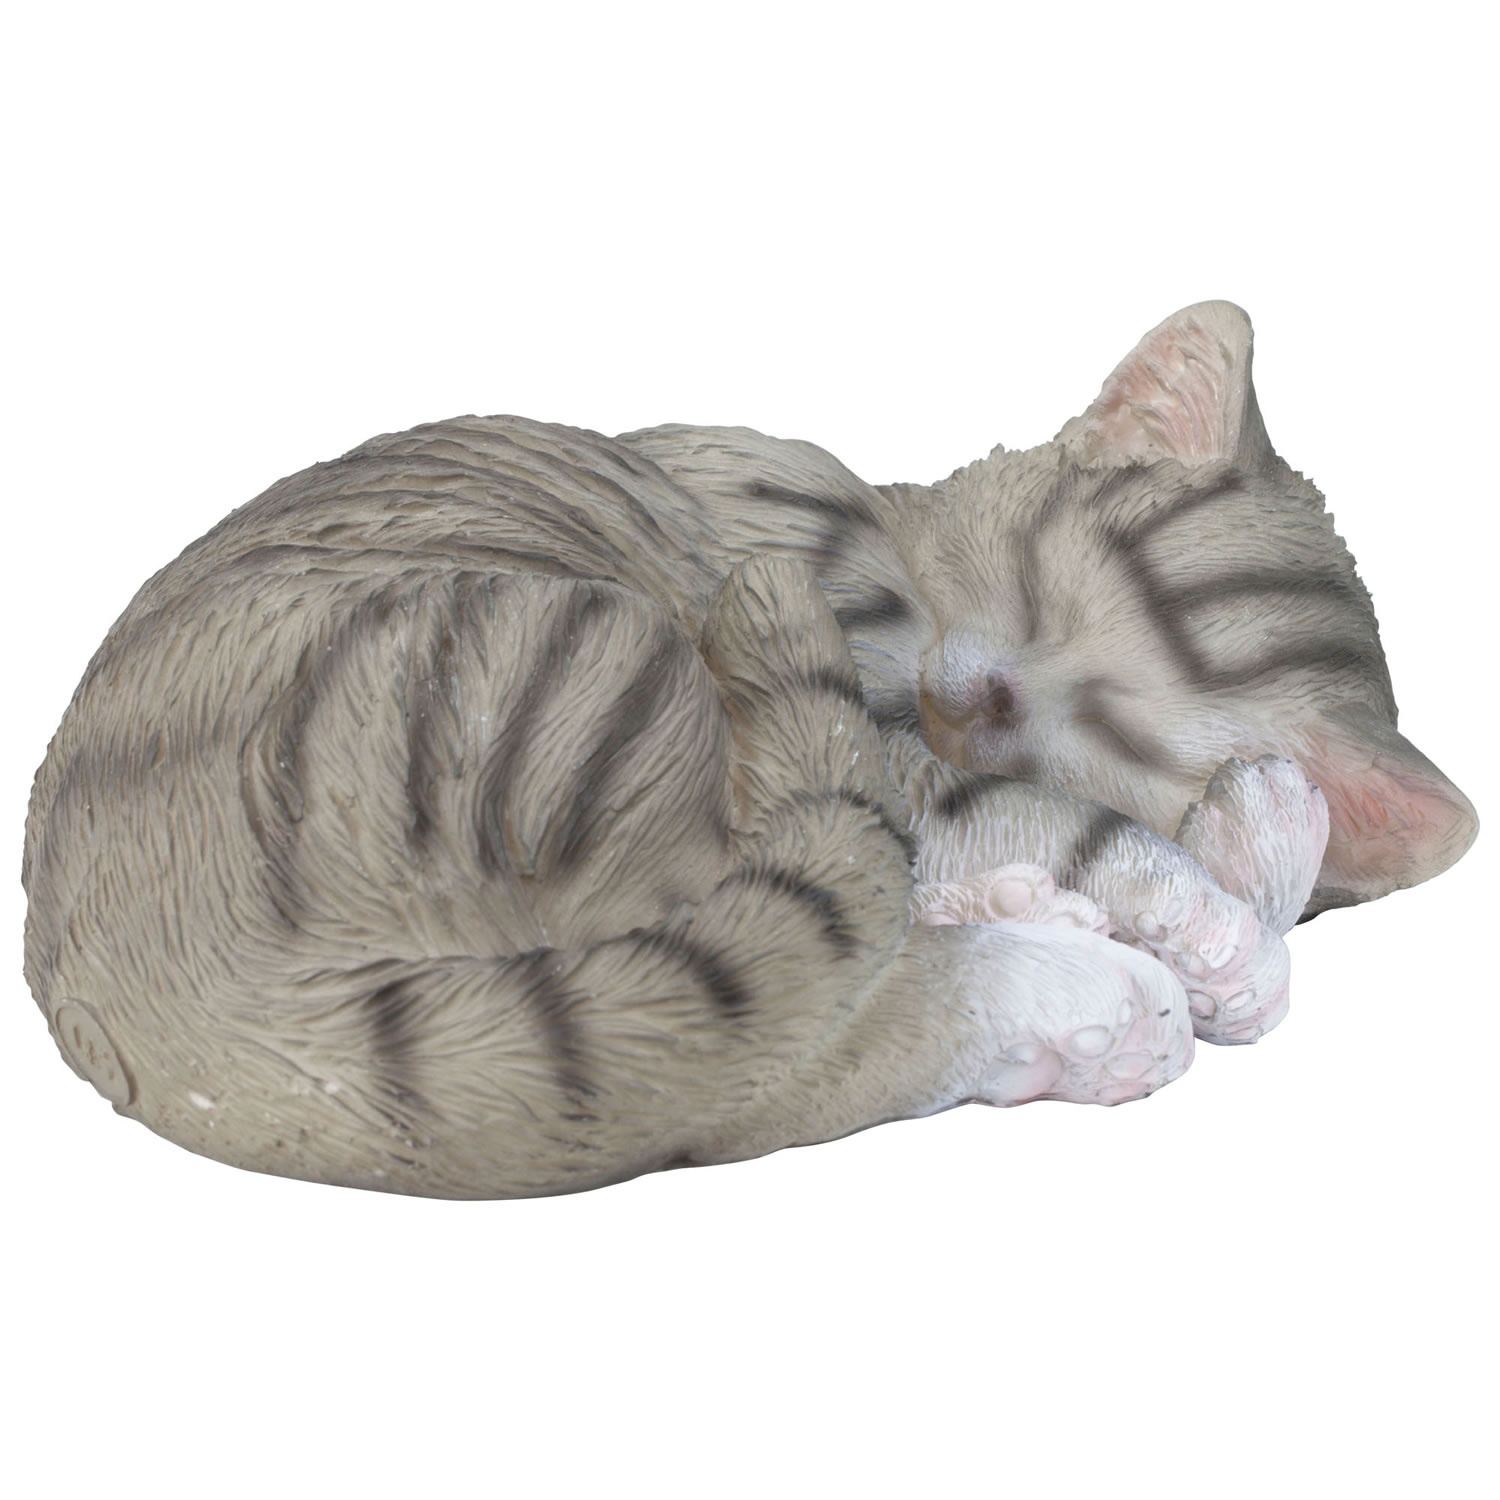 Realistic Life Size Sleeping Grey Tabby Cat Garden